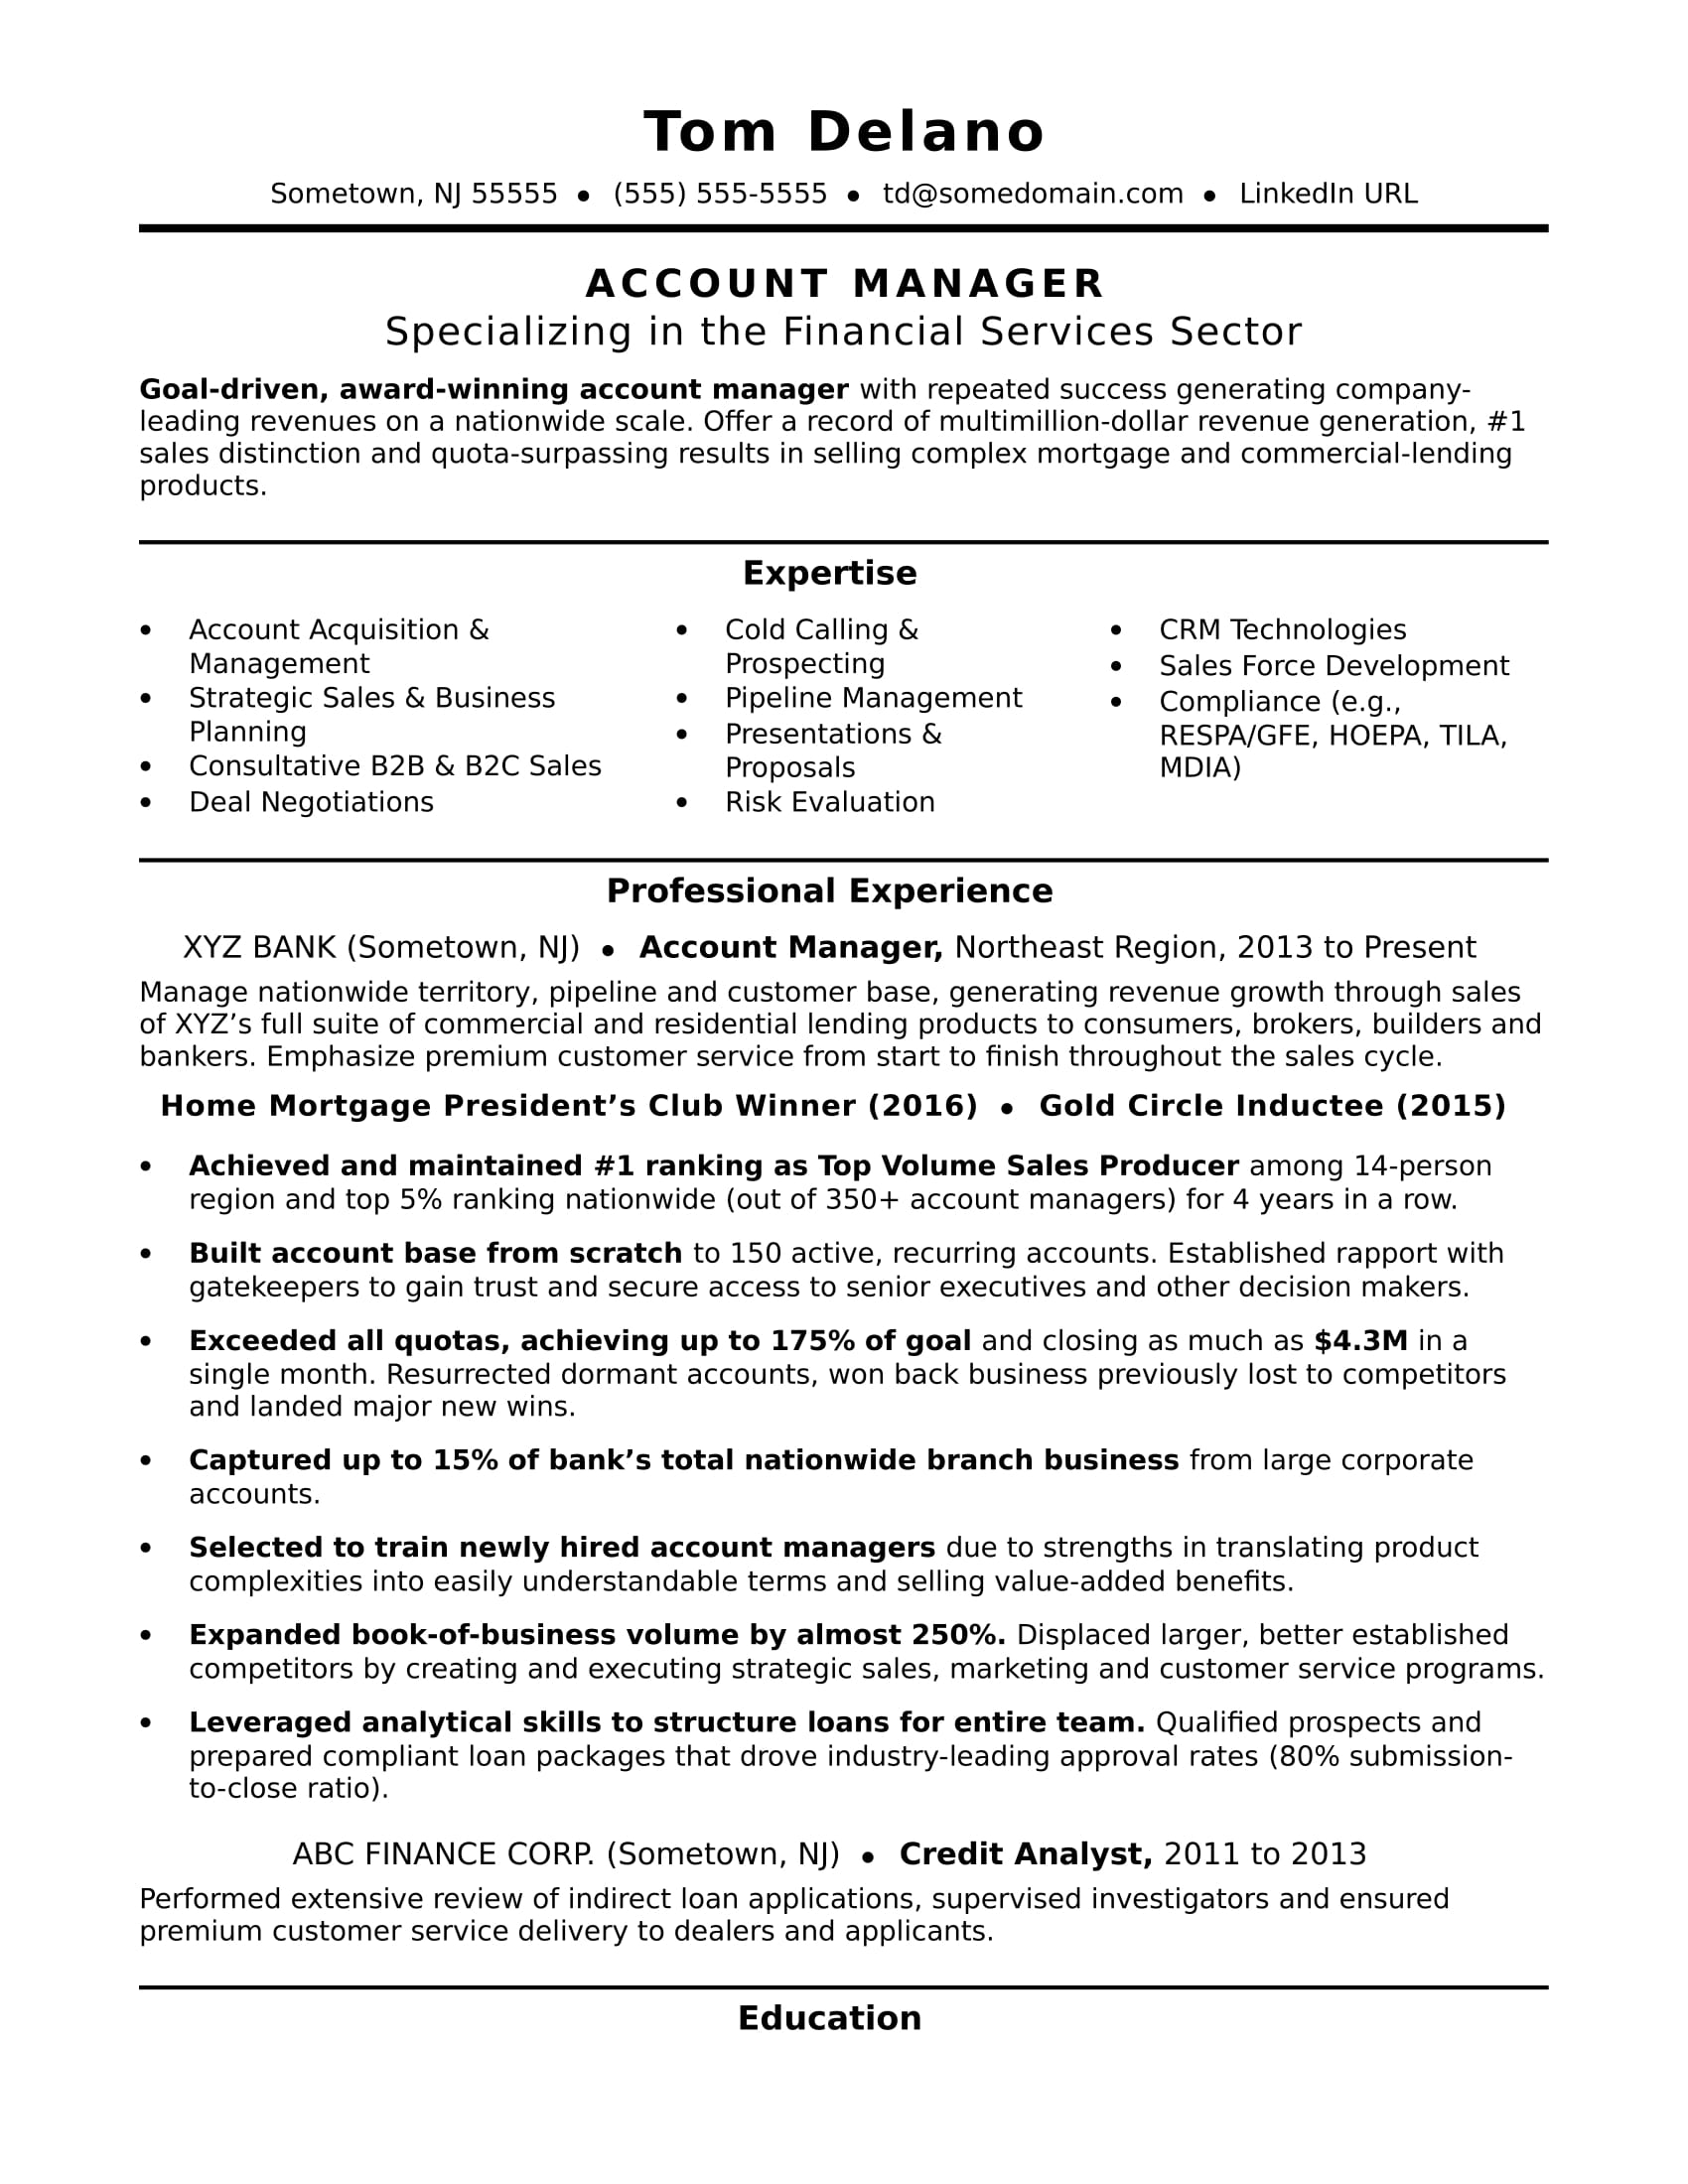 account manager resume sample monster example food server experience dunkin donuts skills Resume Account Manager Resume Example